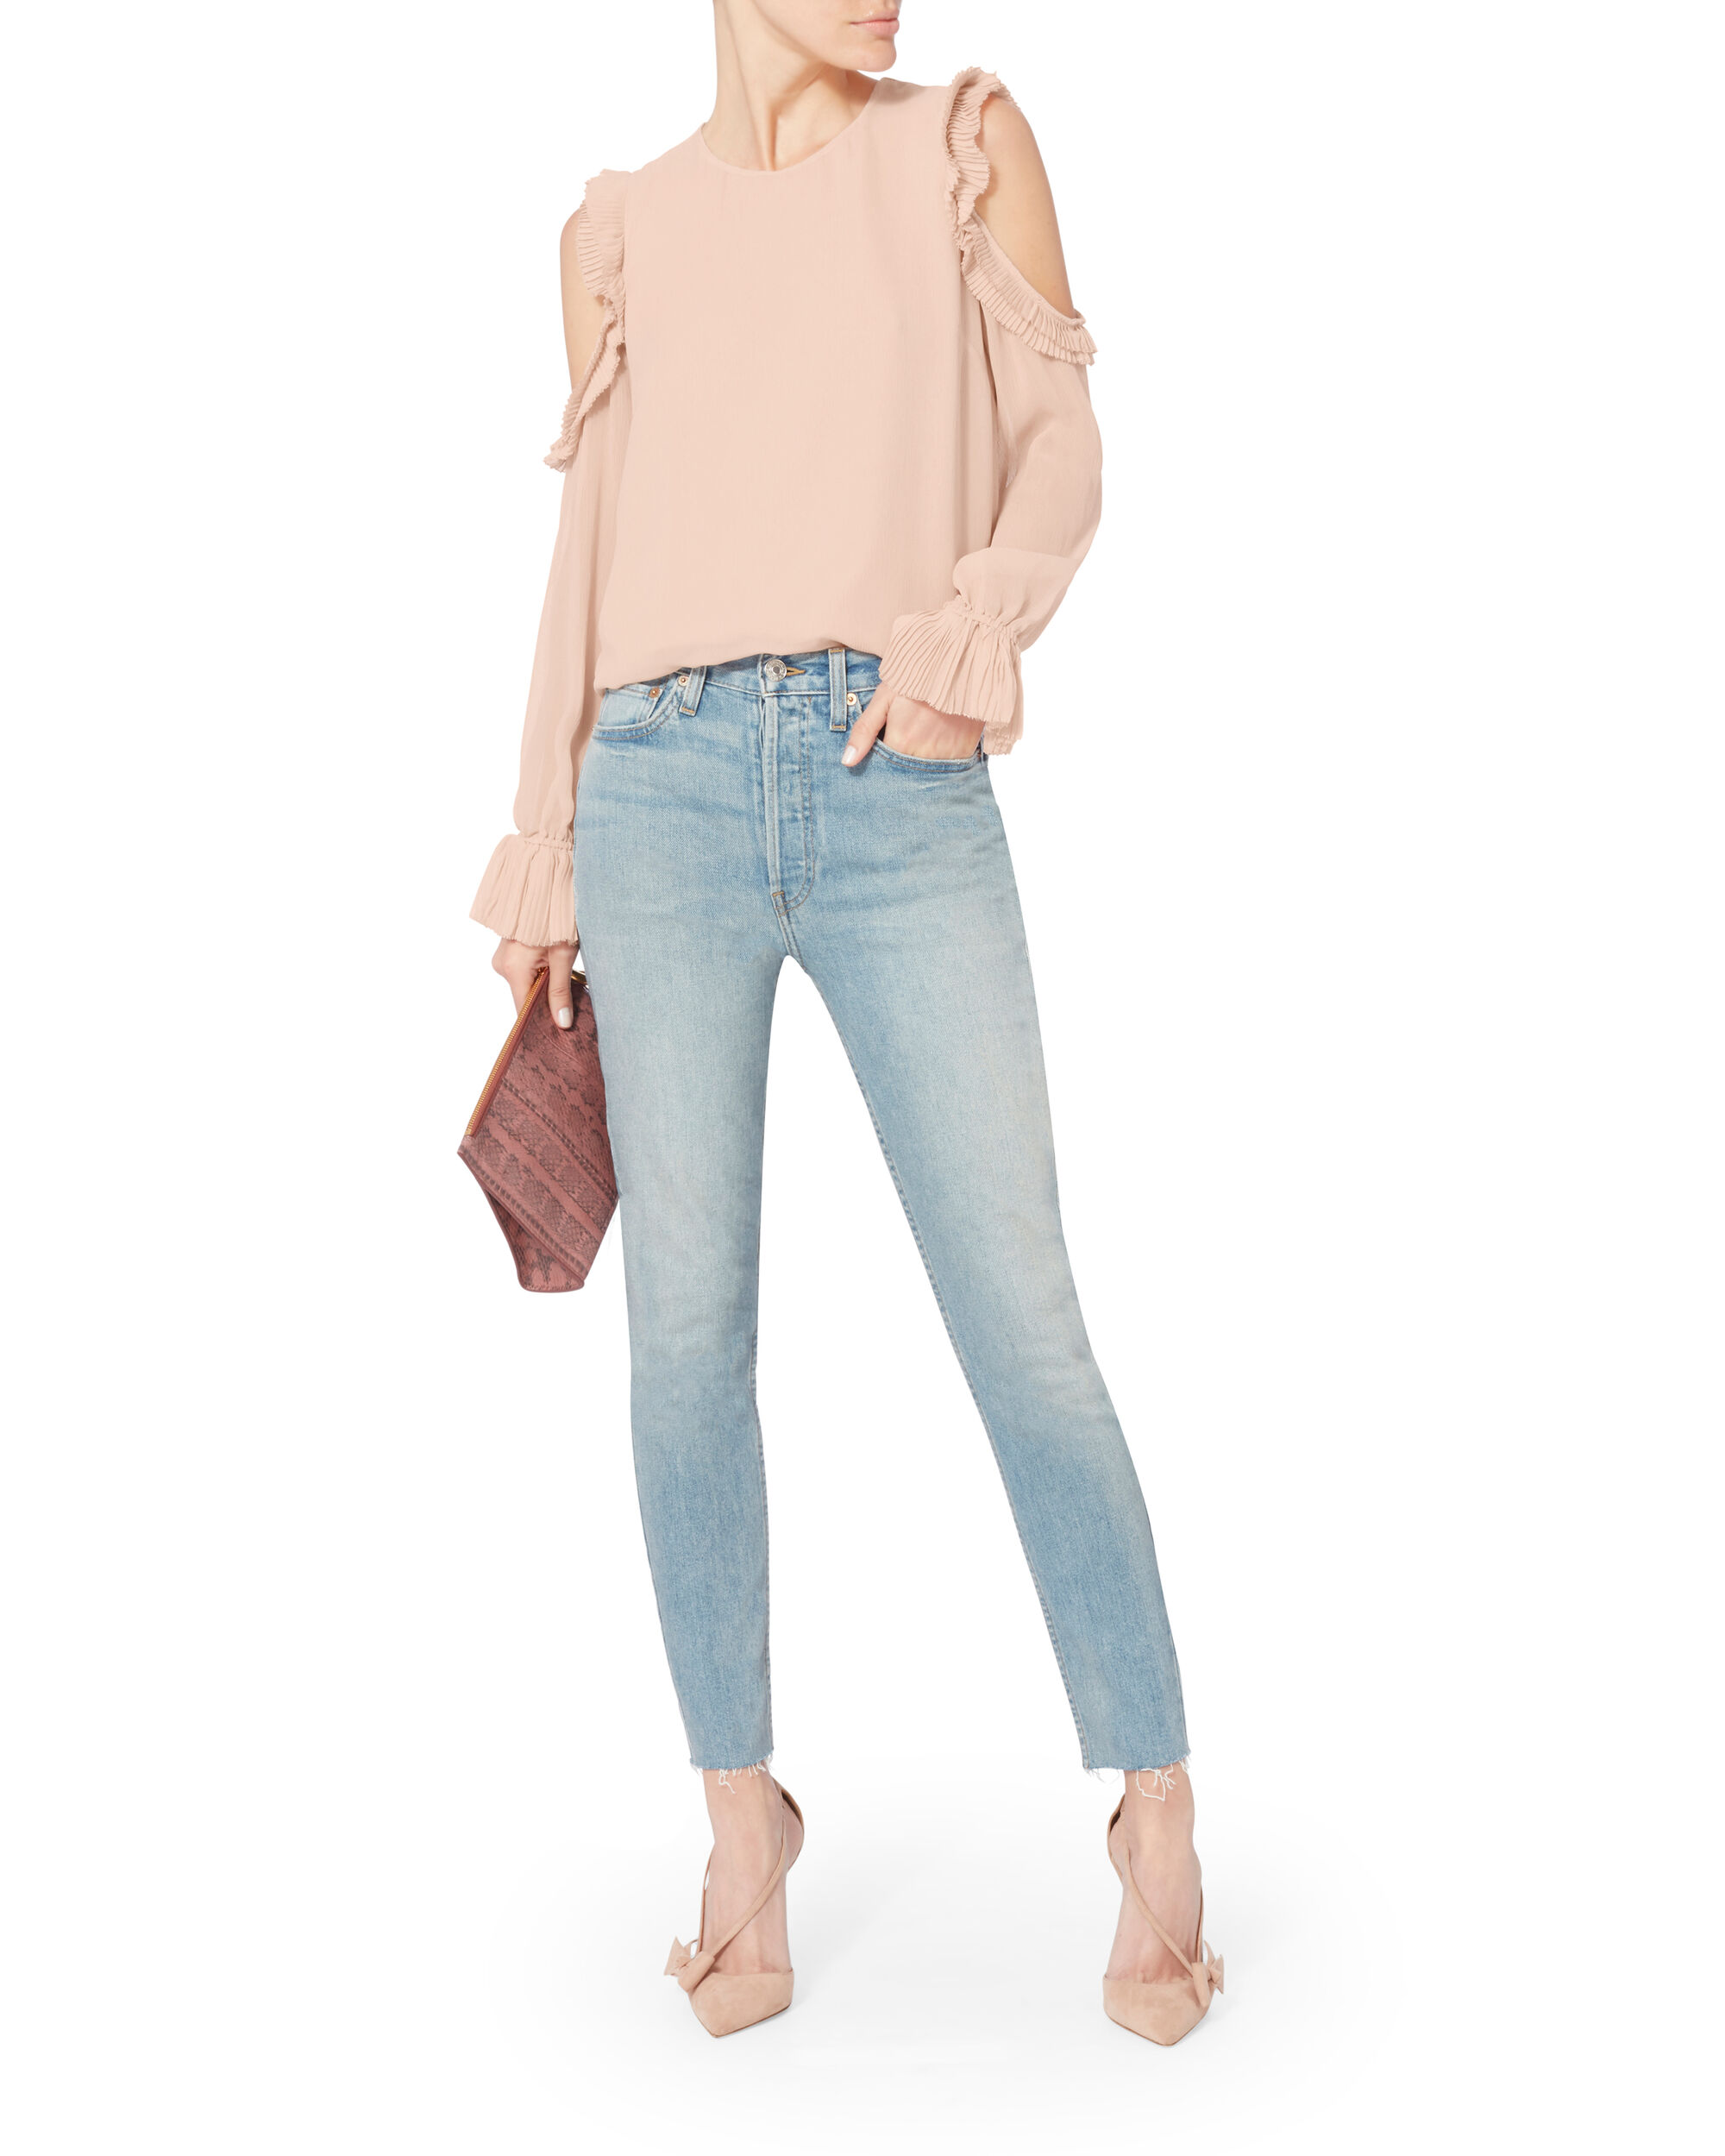 Nelly Ruffle Cold Shoulder Top, BLUSH/NUDE, hi-res